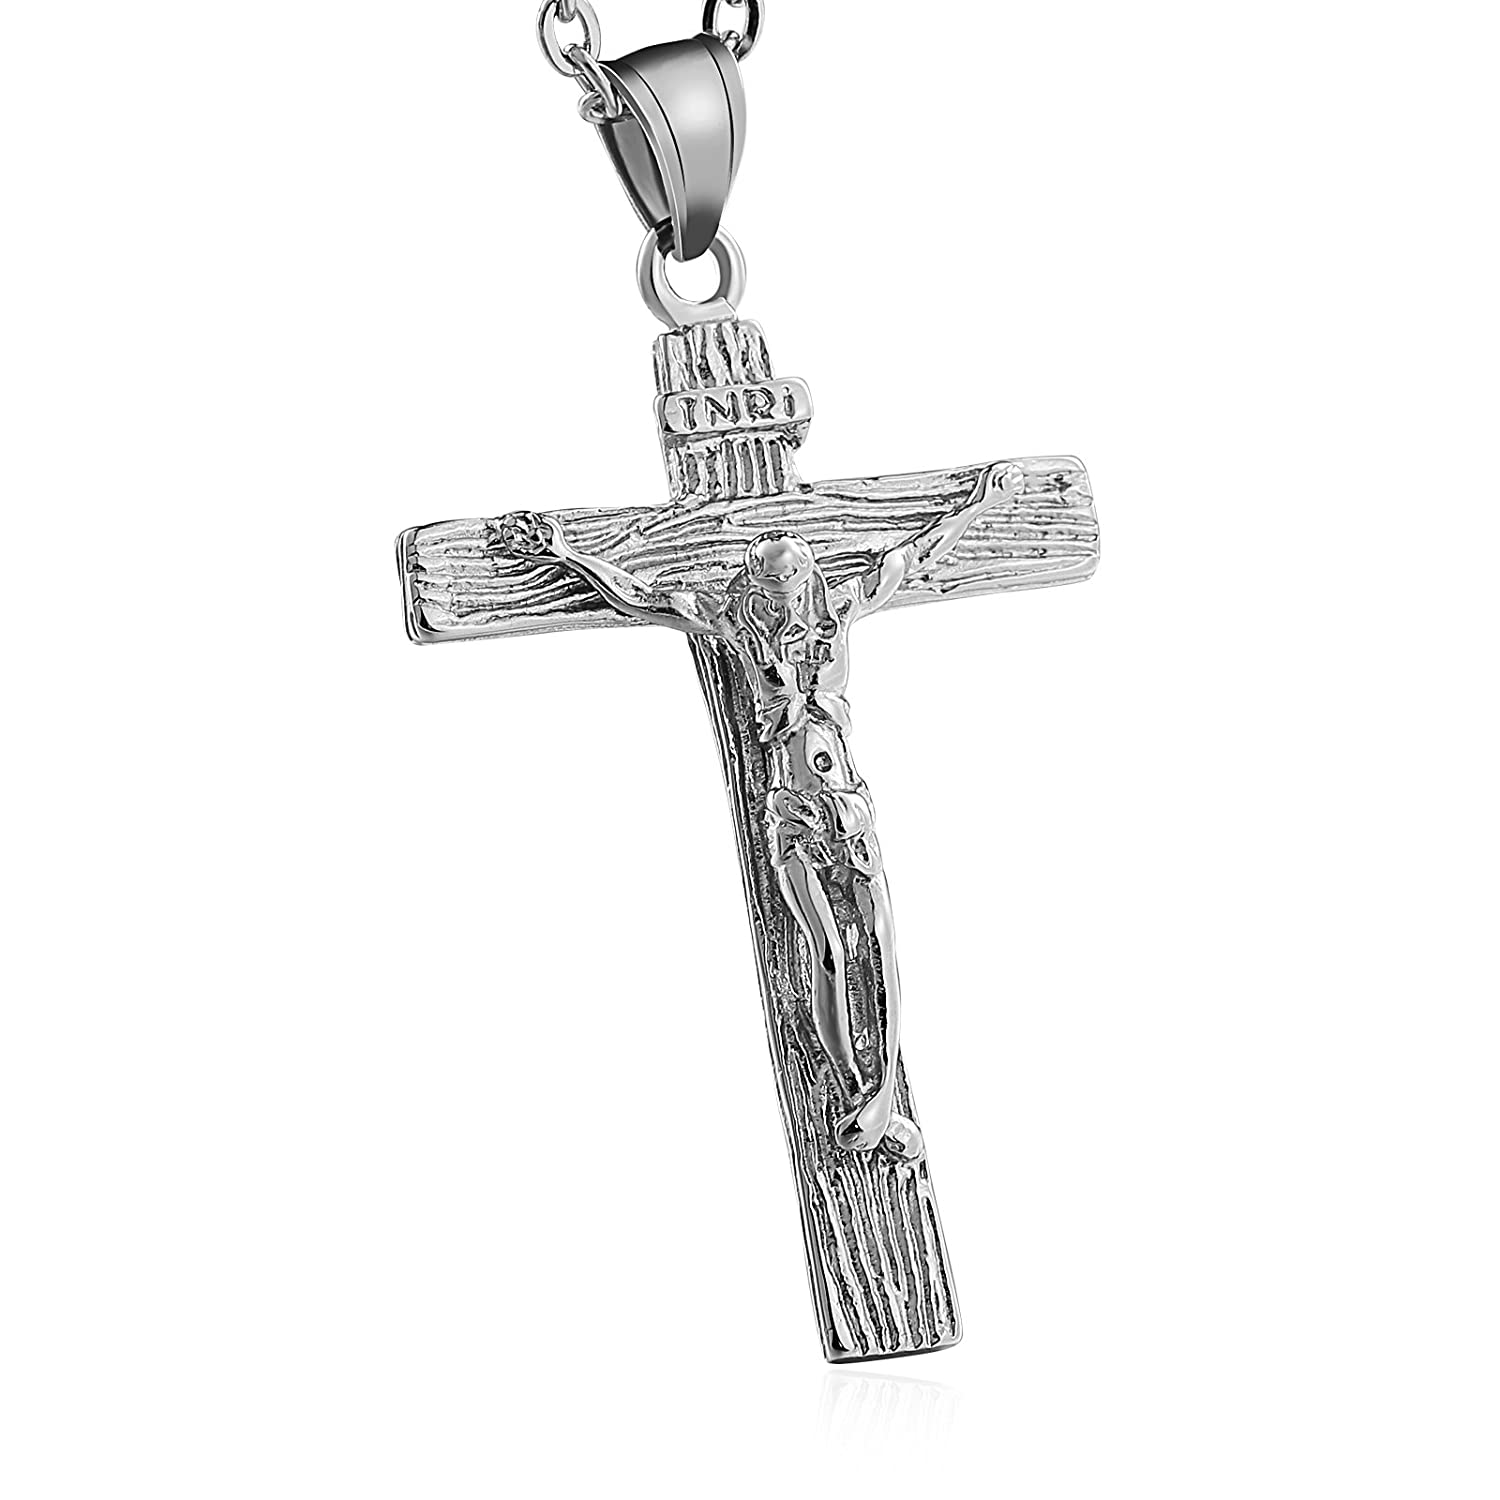 Aokarry Men Women Stainless Steel Pendant Necklace Crucifixion of Jesus